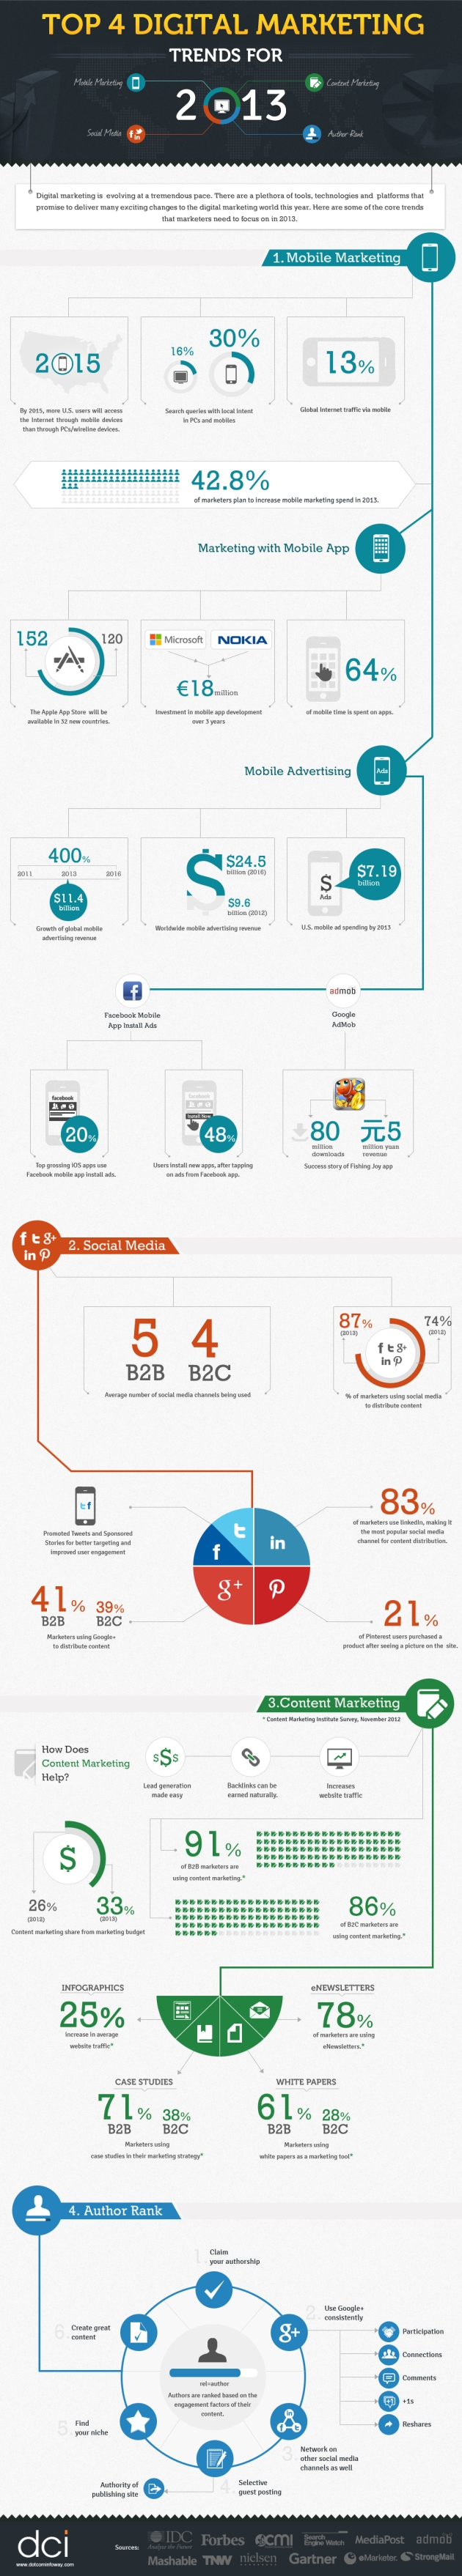 top-4-digital-marketing-trends_5187cc7db178a